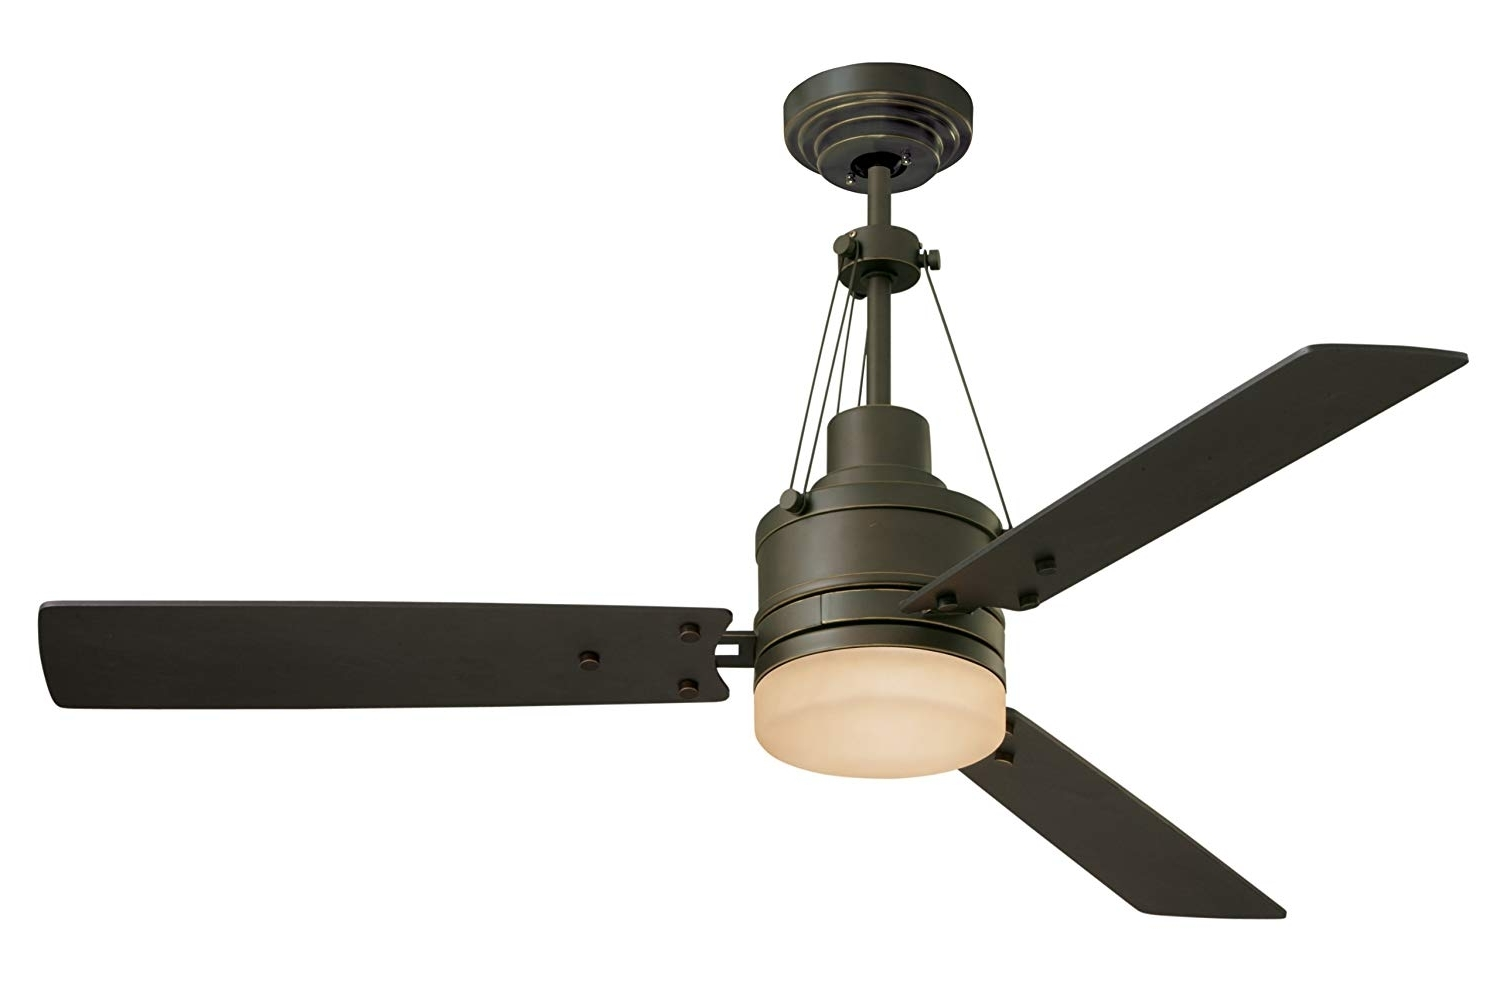 Amazon Outdoor Ceiling Fans With Lights Intended For 2019 Appealing Emerson Ceiling Fans In Cf205Ges Fan With Light And Remote (Gallery 14 of 20)